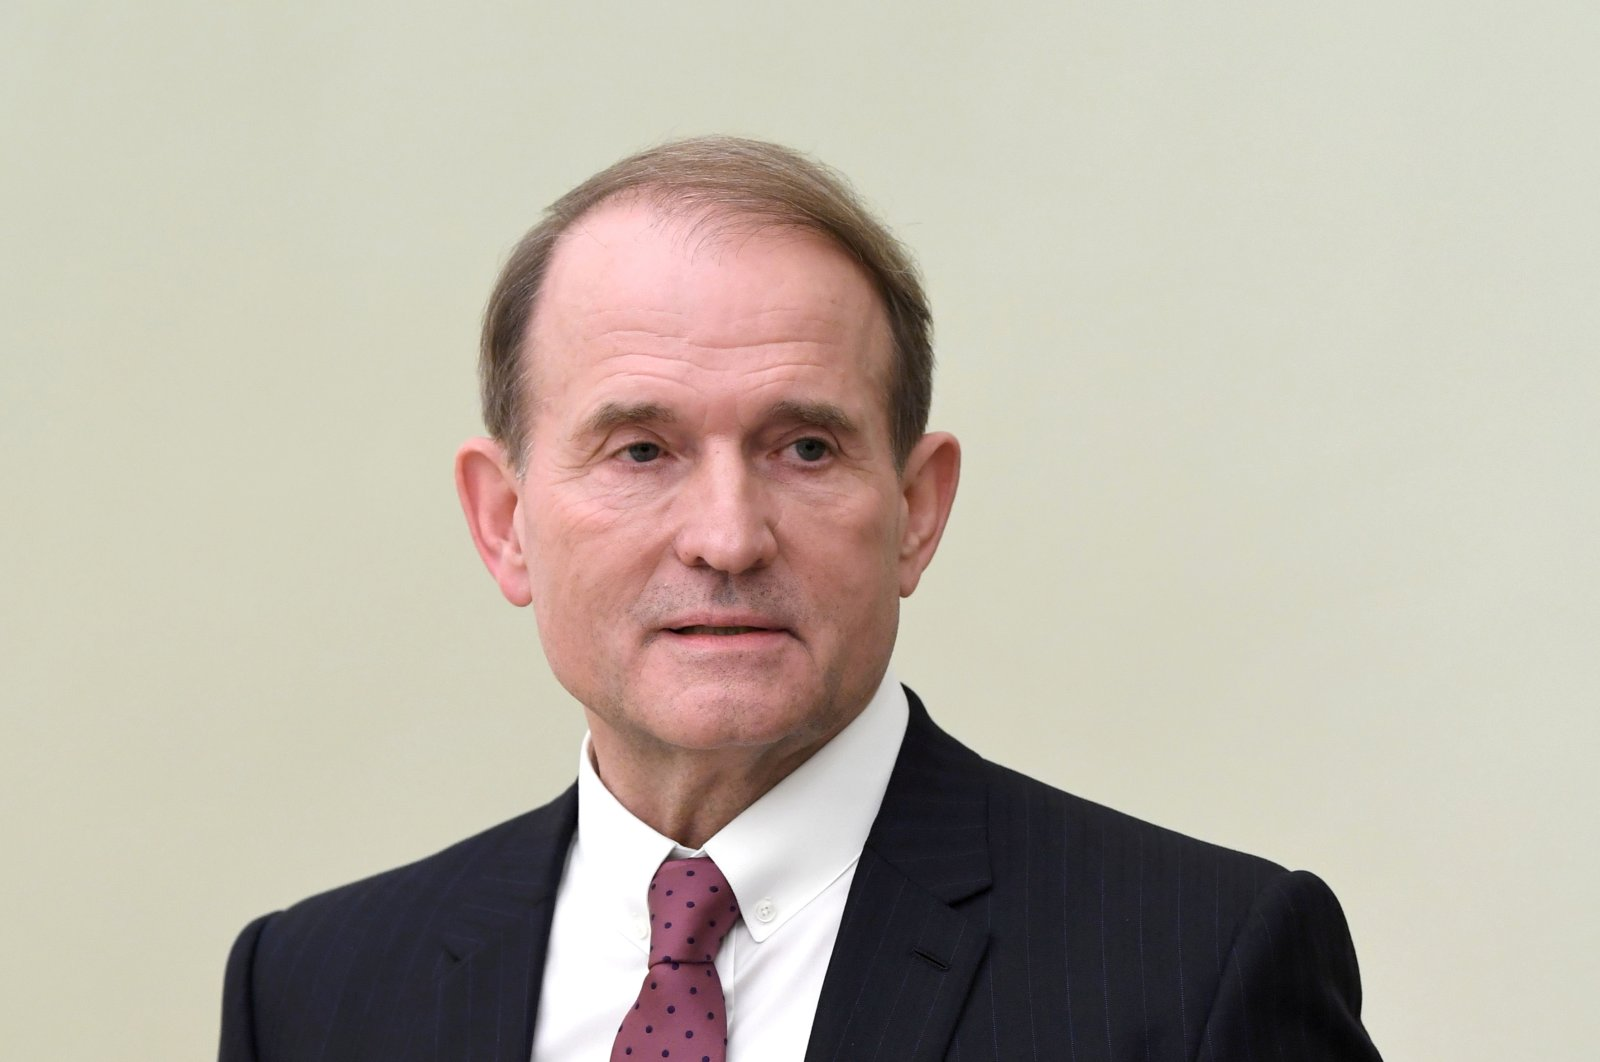 Leader of Ukraine's Opposition Platform, For Life political party Viktor Medvedchuk attends a meeting with Russia's President Vladimir Putin in Moscow, Russia, March 10, 2020. (Reuters Photo)